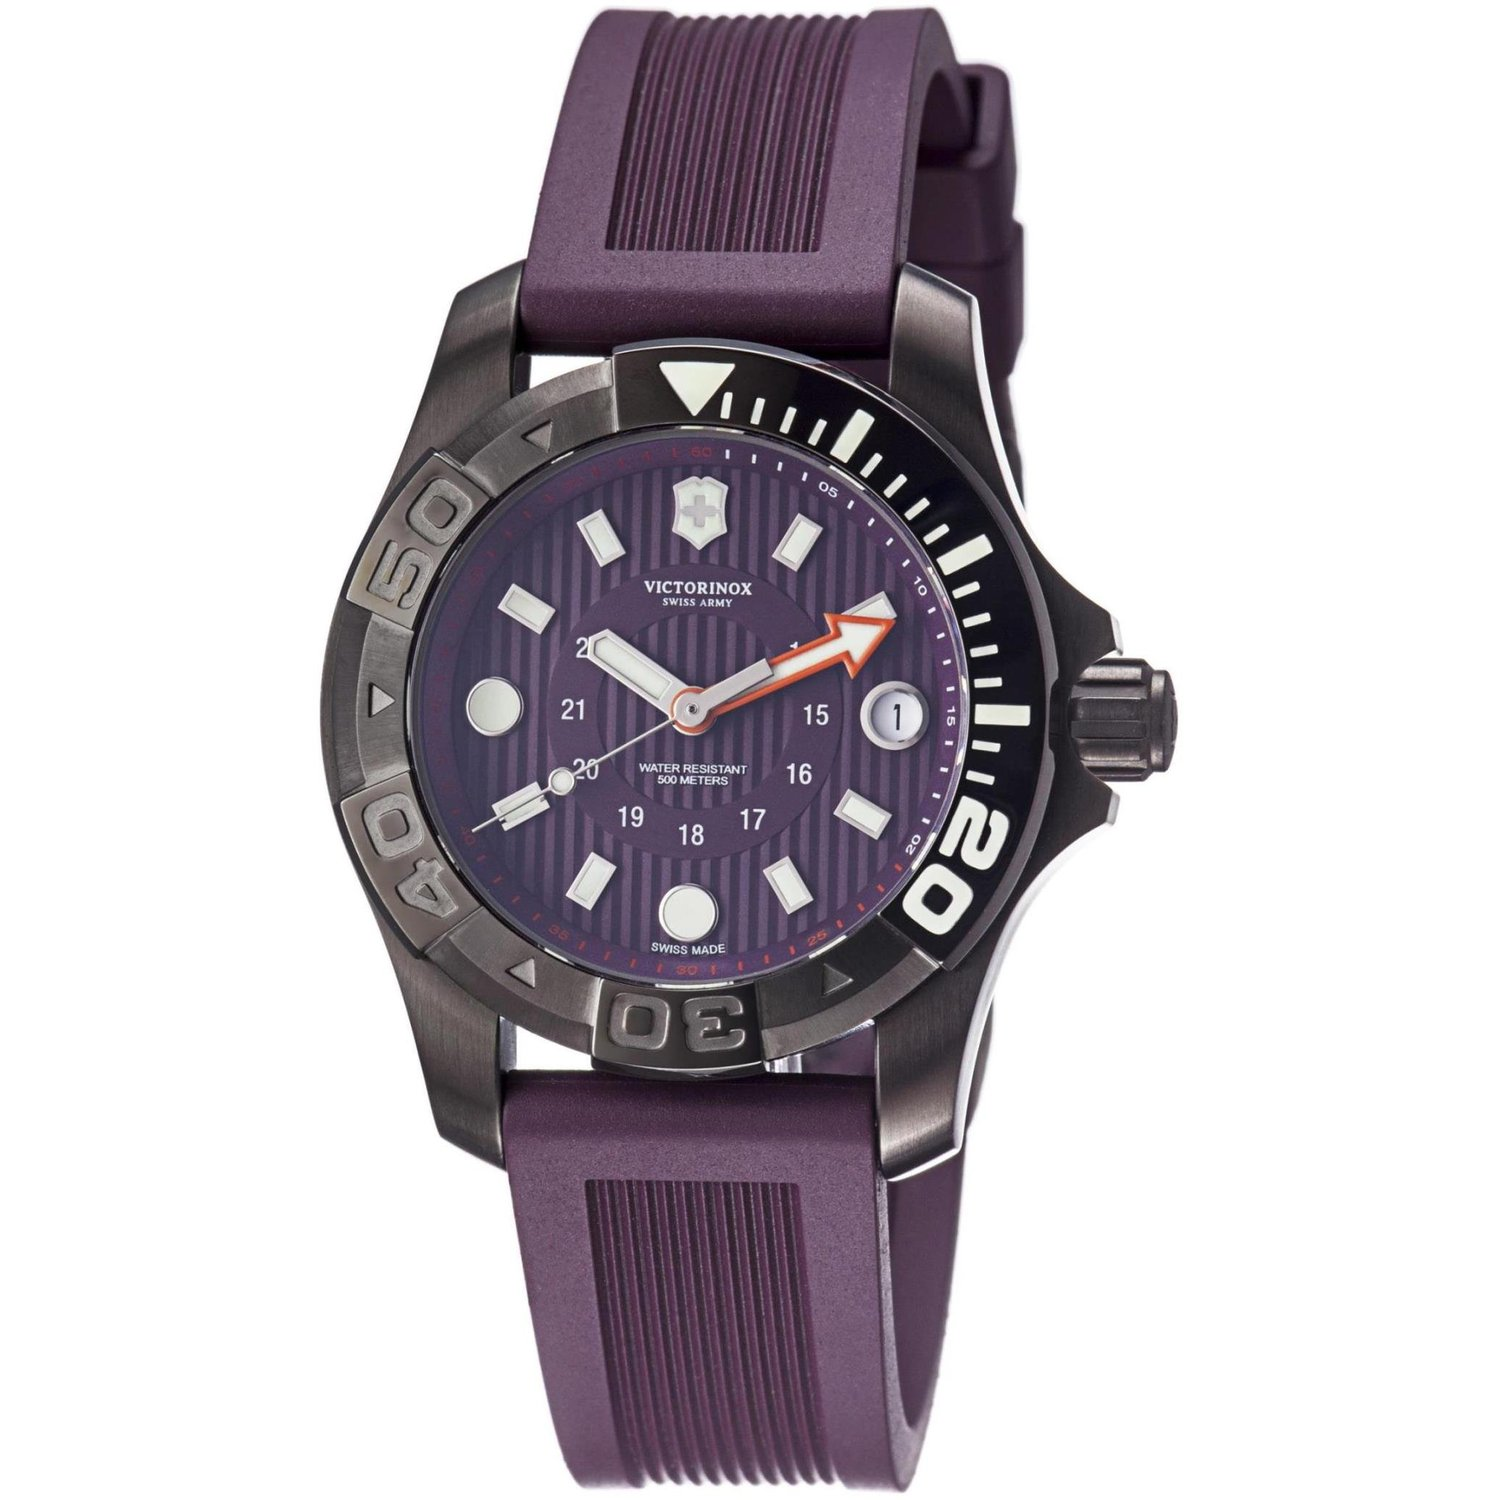 Victorinox Swiss Army Watch, Men's Dive Master 500m Purple Rubber Strap 38mm 241558